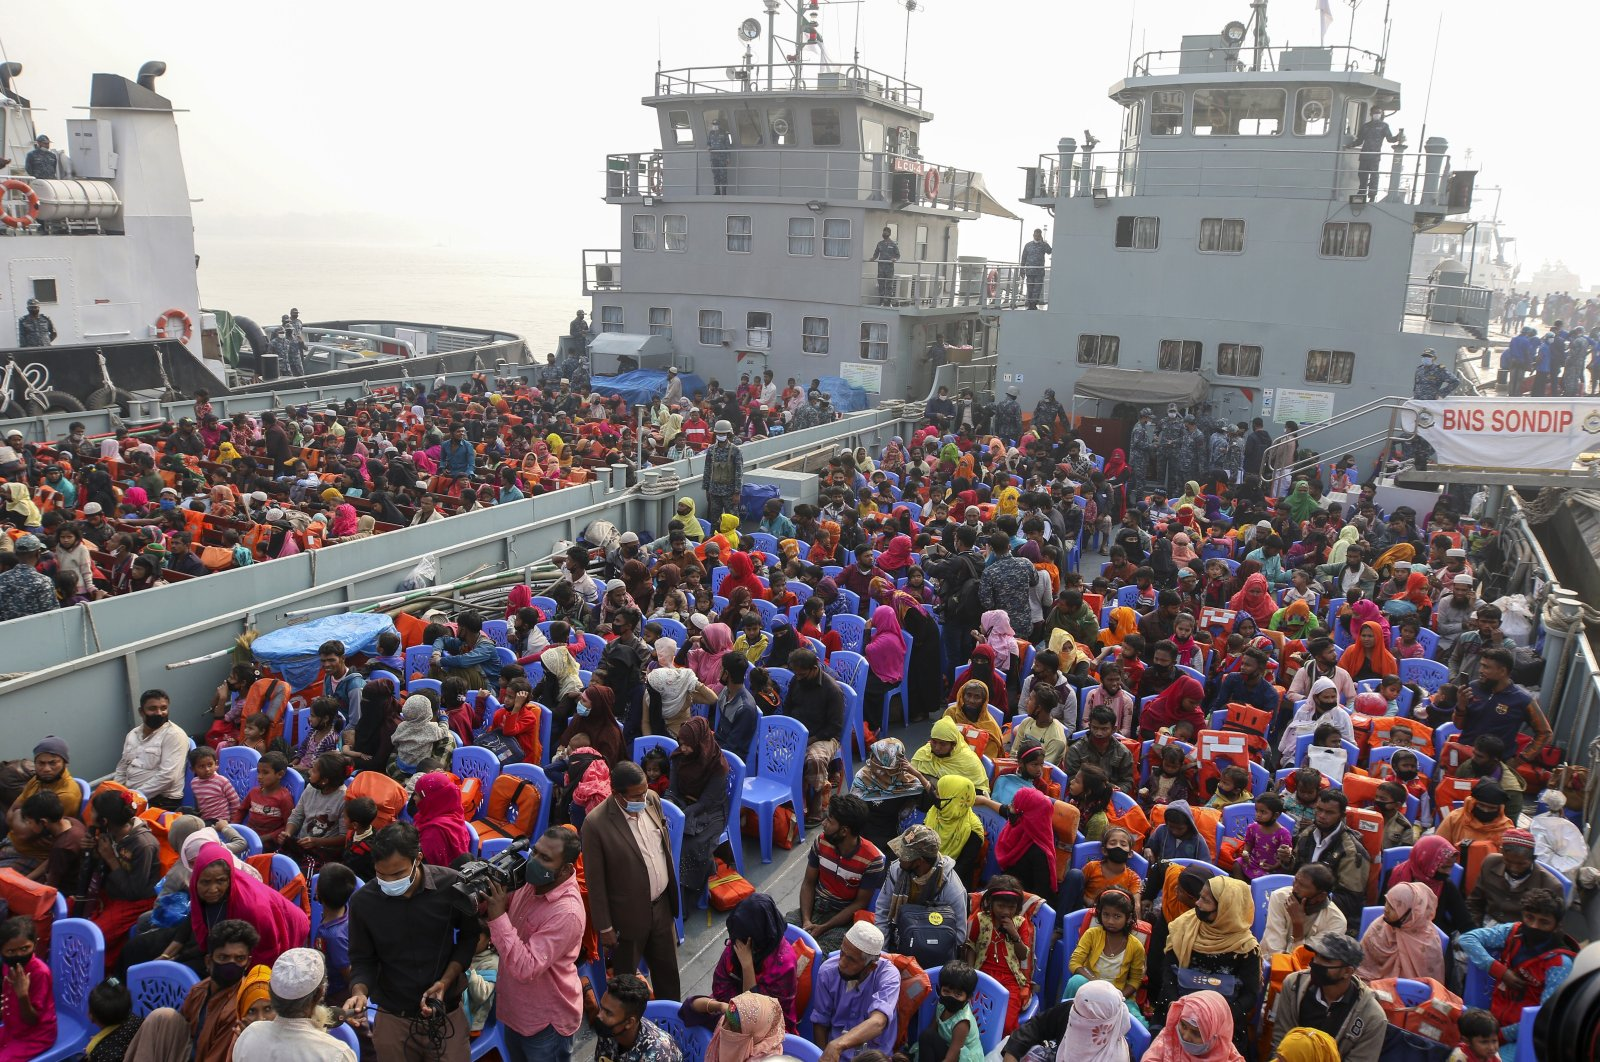 Rohingya refugees headed to the Bhasan Char island board navy vessels from the south eastern port city of Chattogram, Bangladesh, Feb. 15, 2021. (AP Photo)